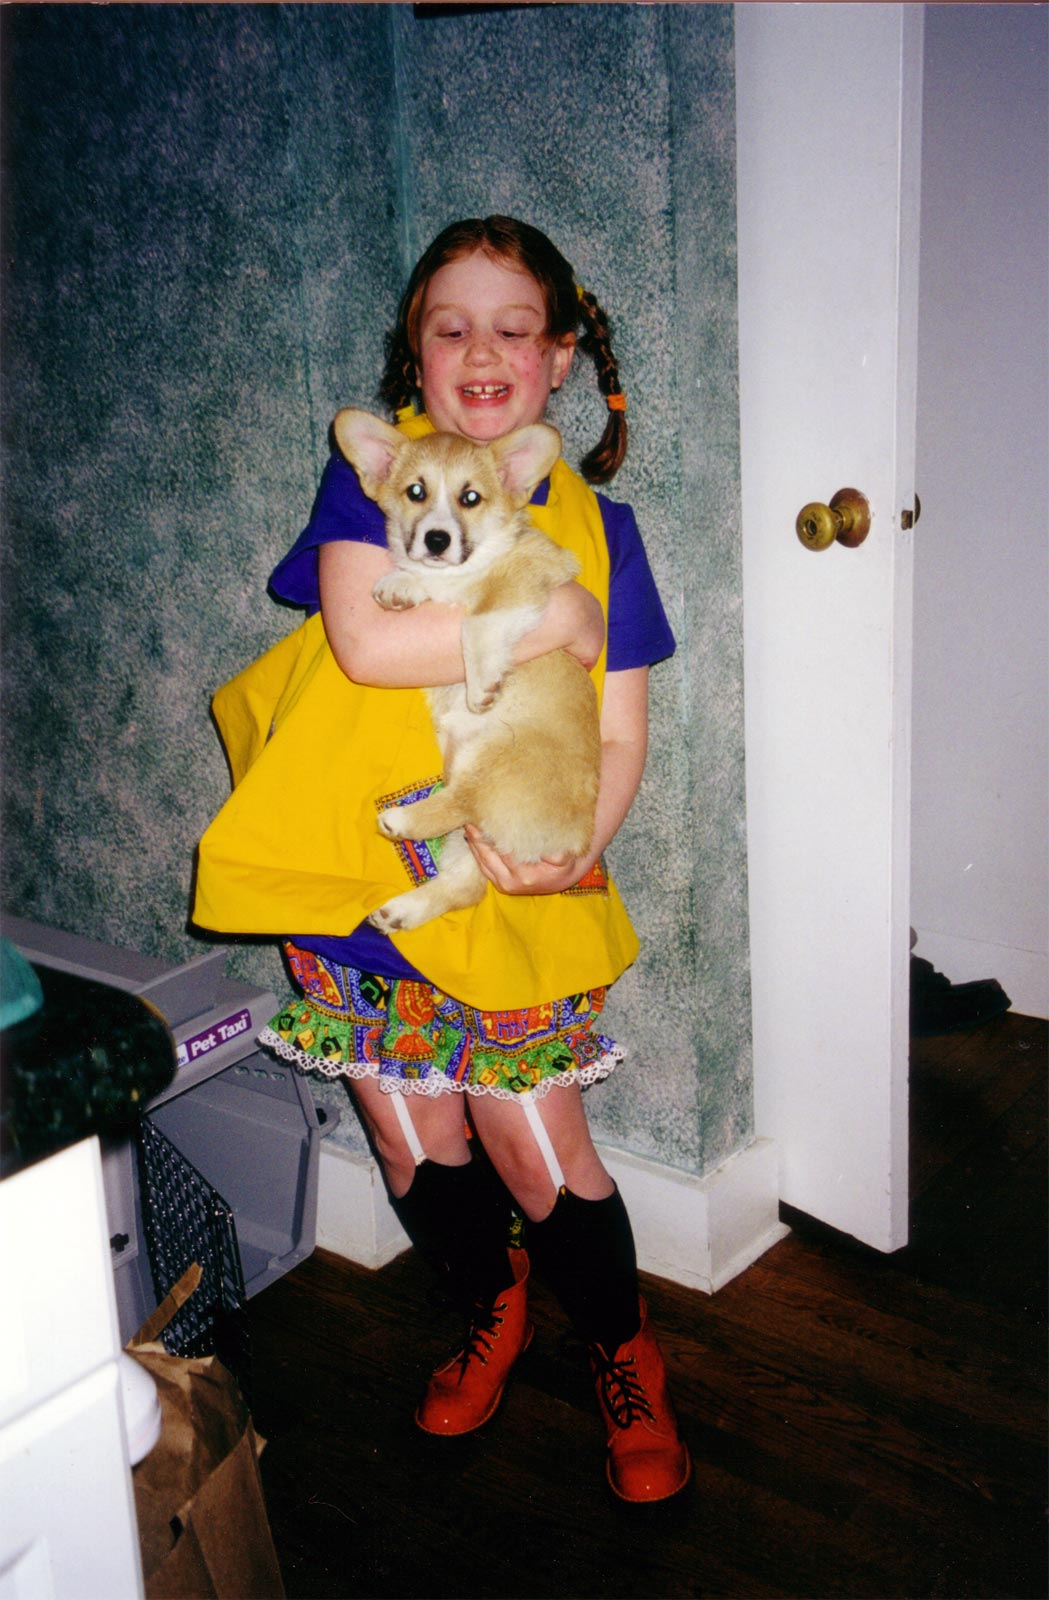 Lauren, dressed as Pippi Longstocking, with our dog Zoe in 2000.